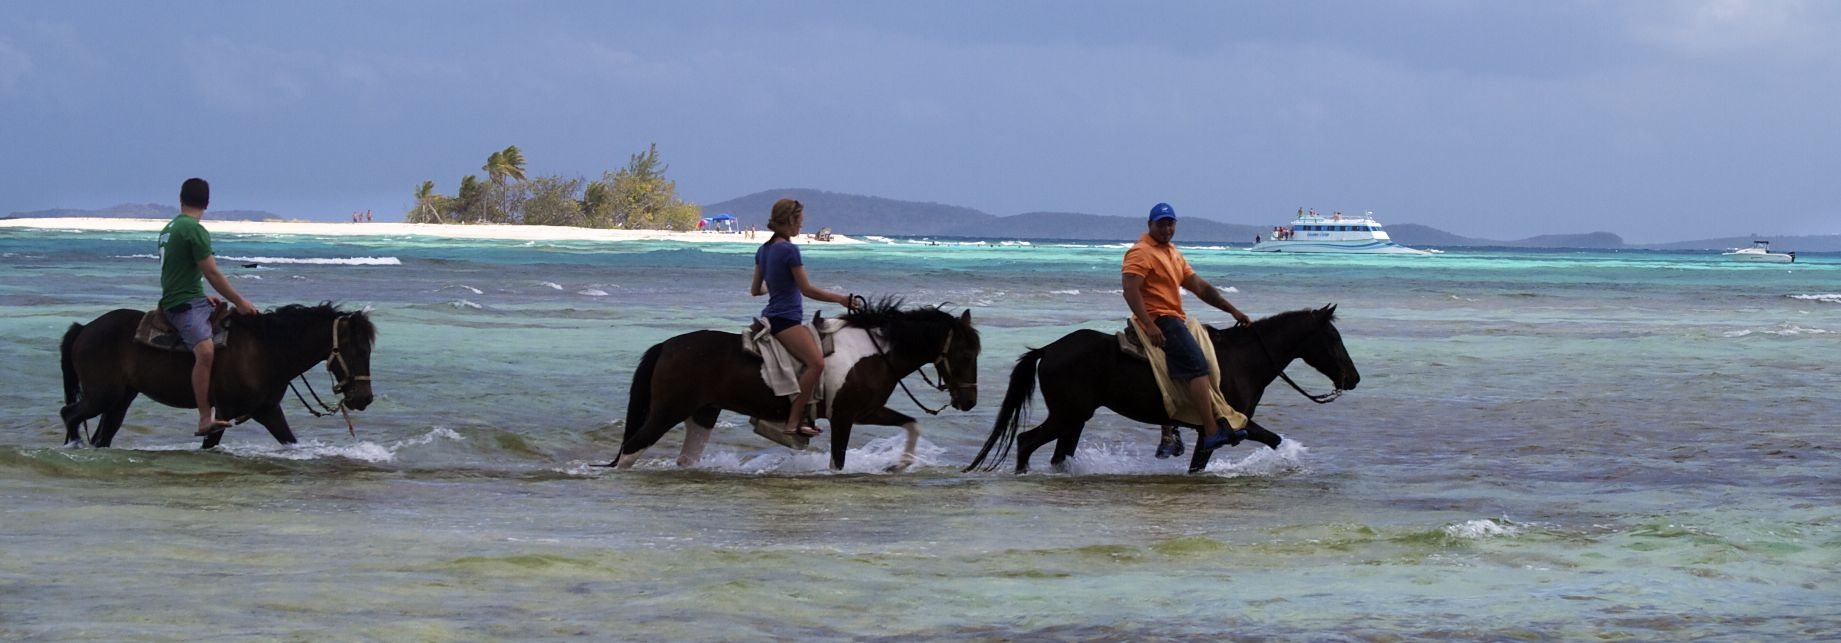 Horseback riding, Palominos Fajardo,PR